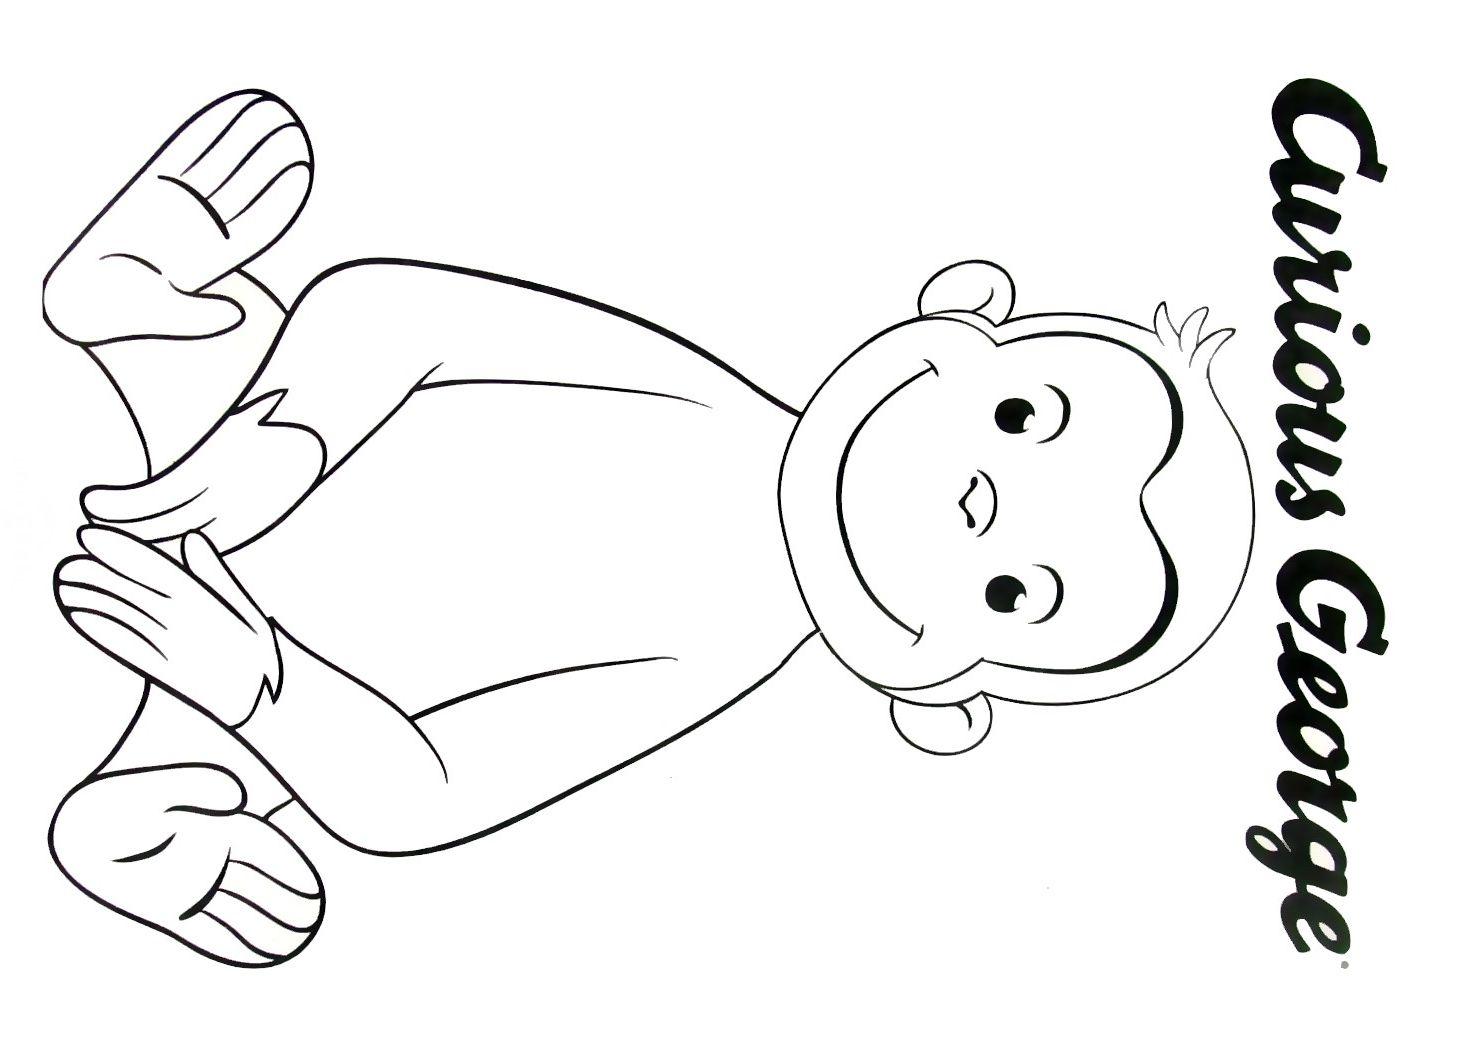 Coloring book curious george - Curious George Coloring Book Page Printable